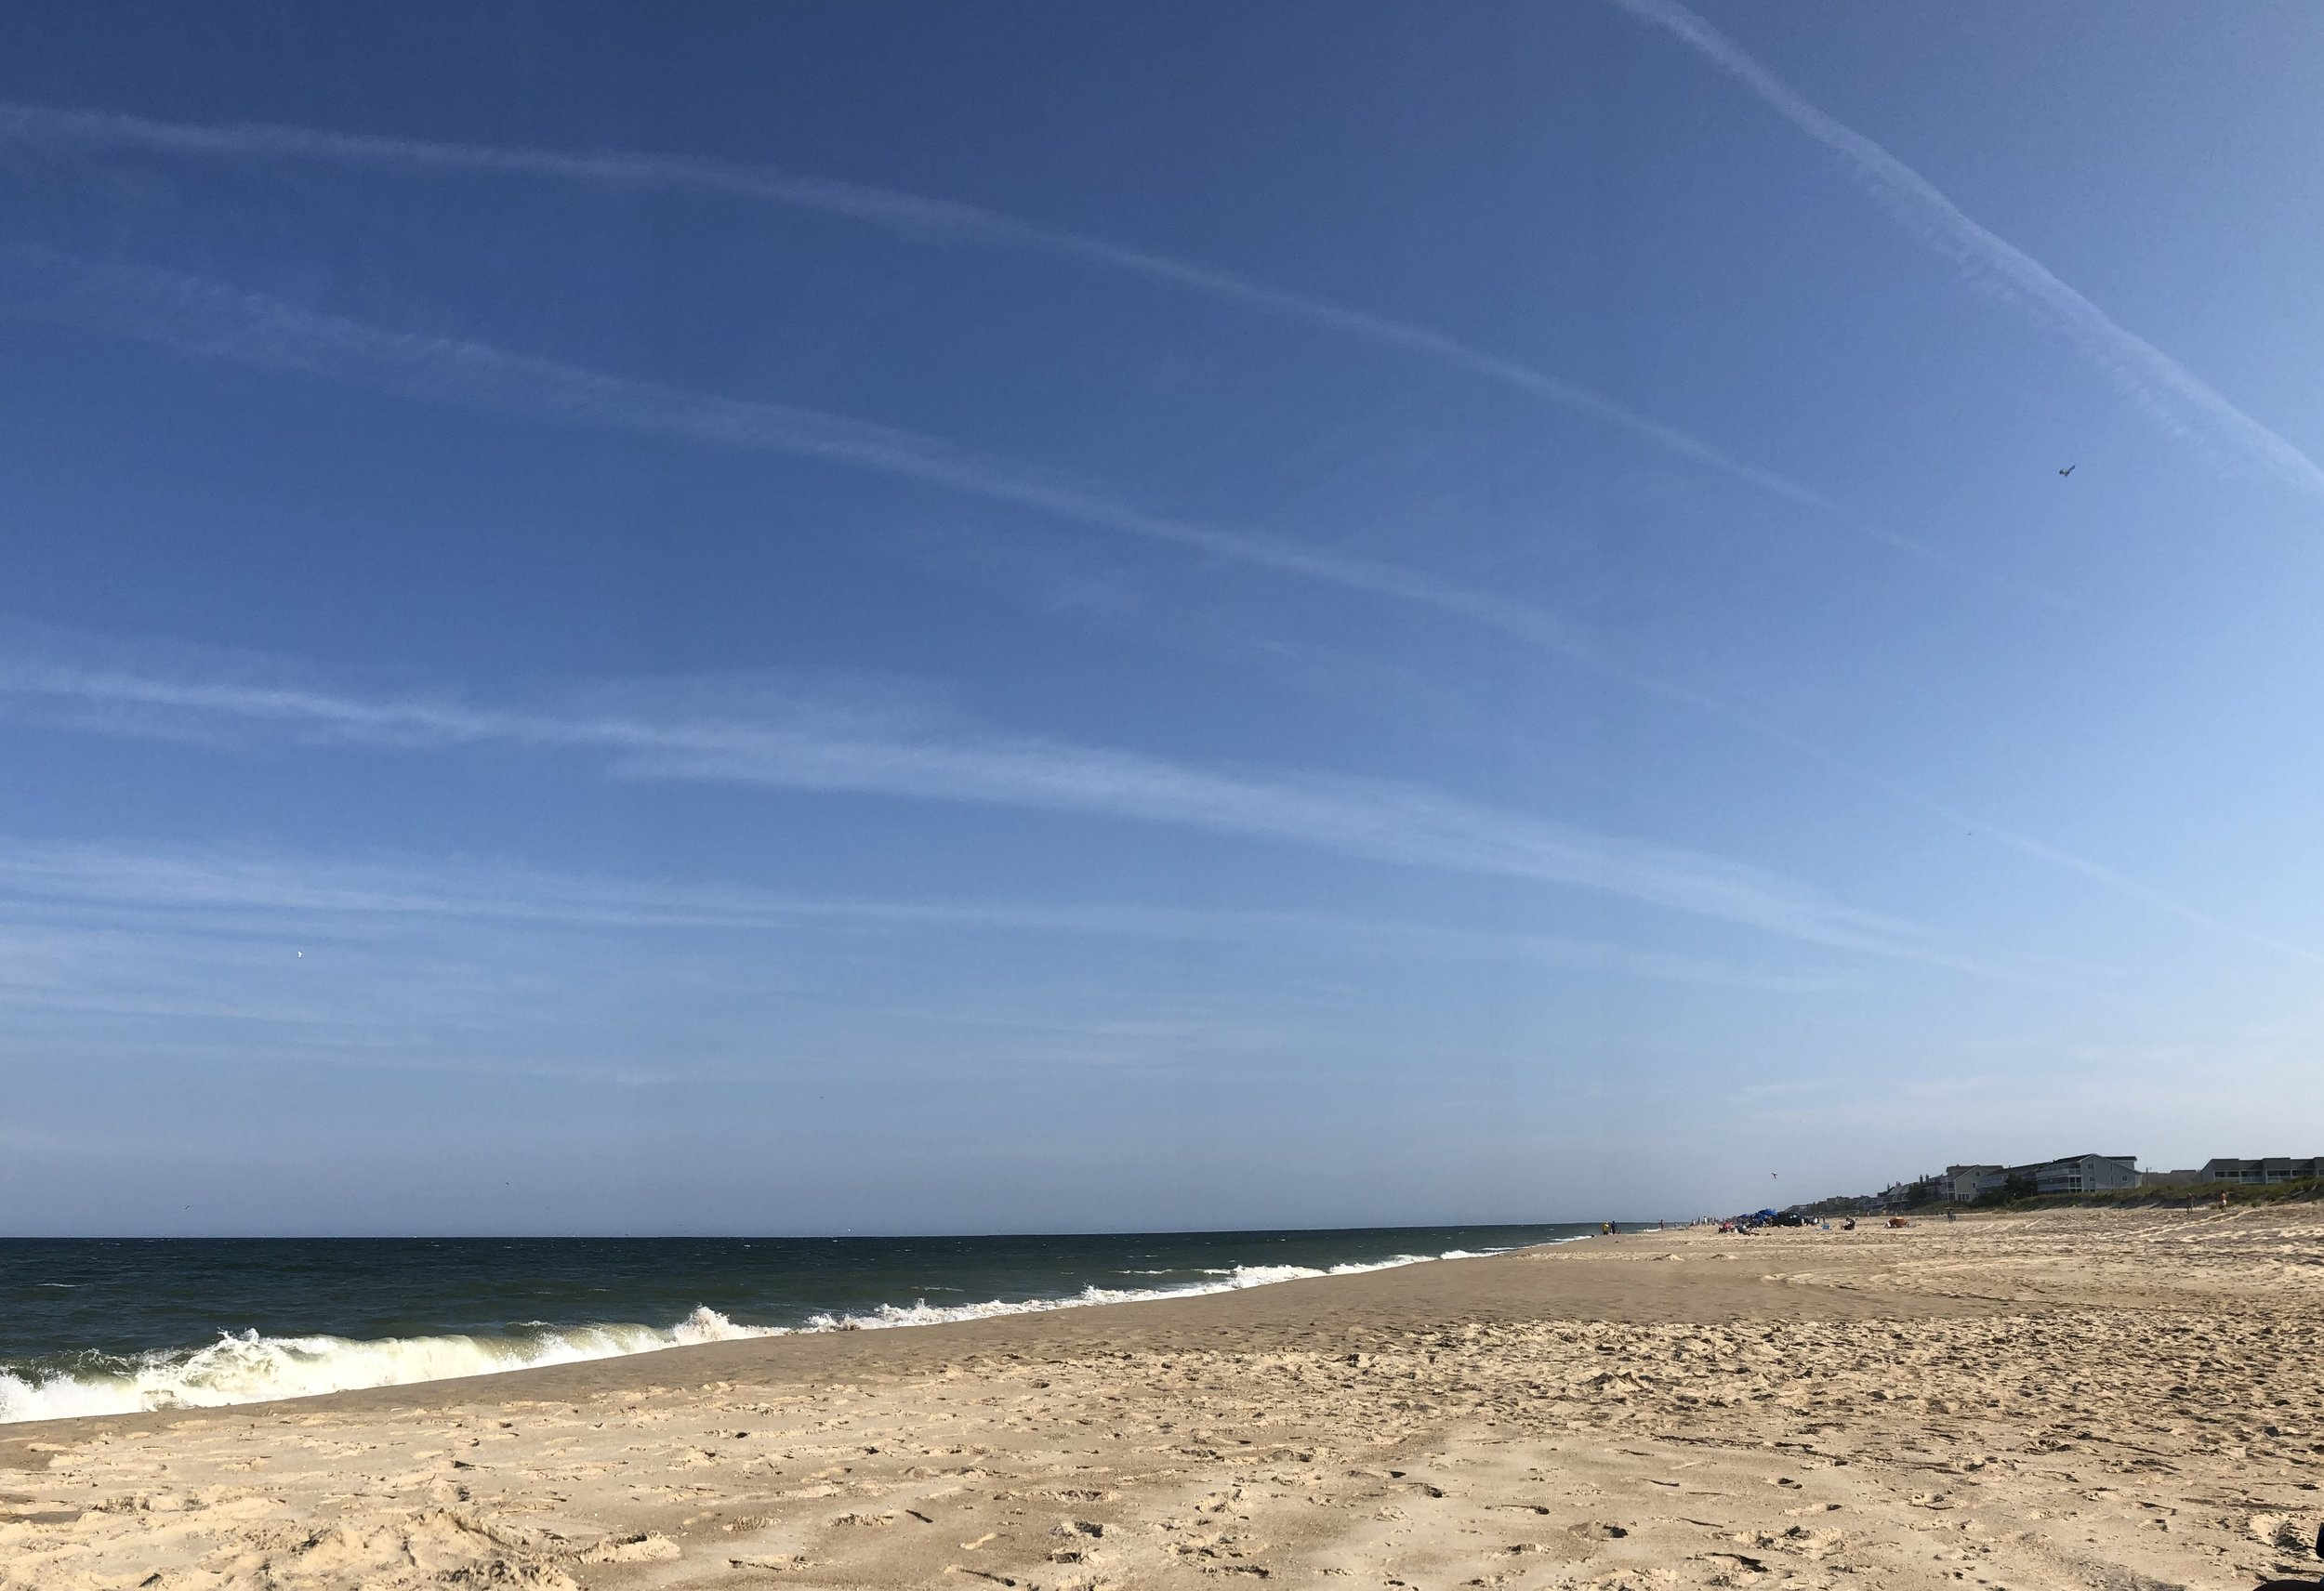 Bethany Beach, where I prefer to do my summer reading.